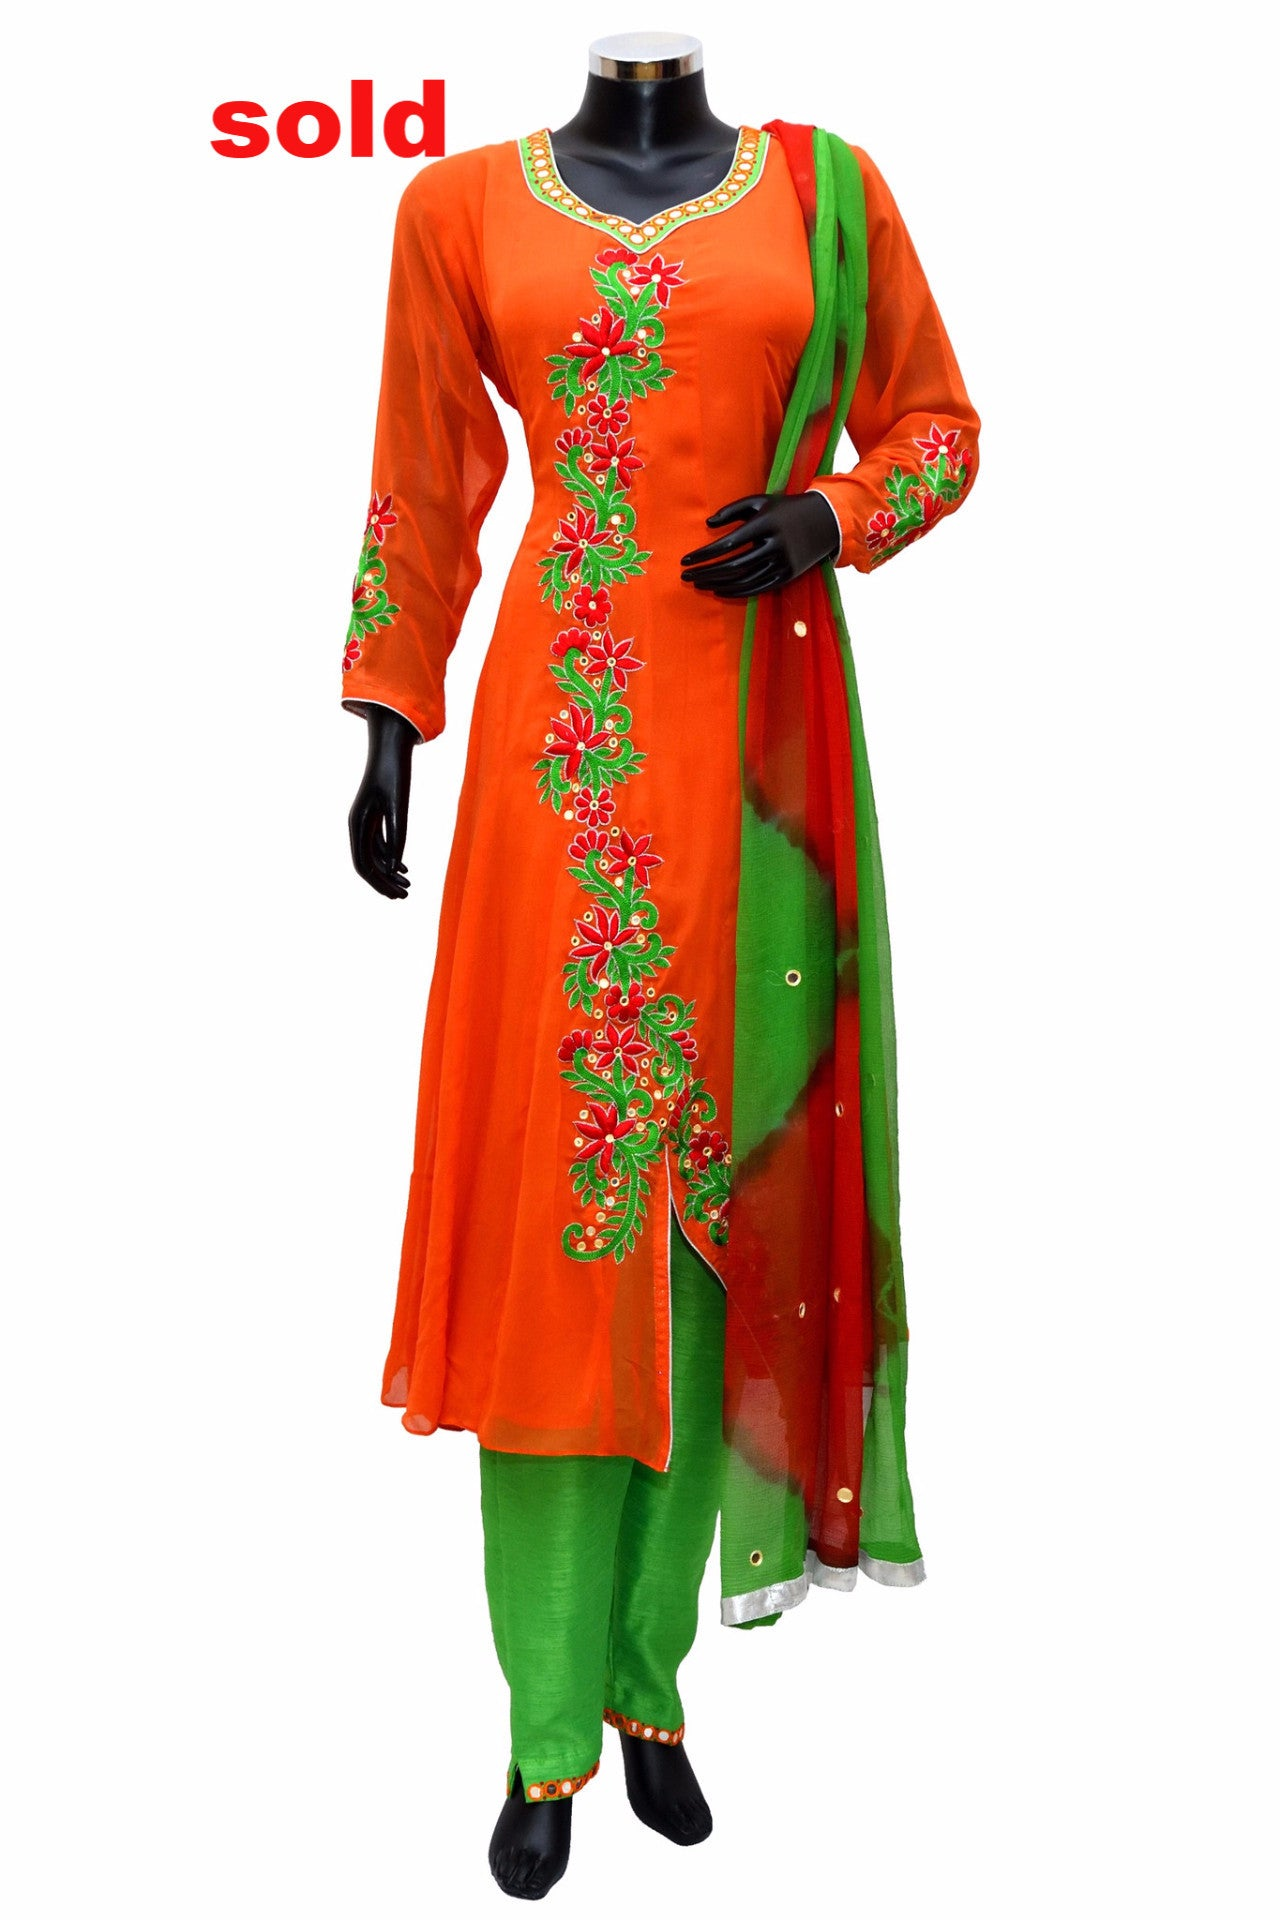 Orange and green dress # fdn0252